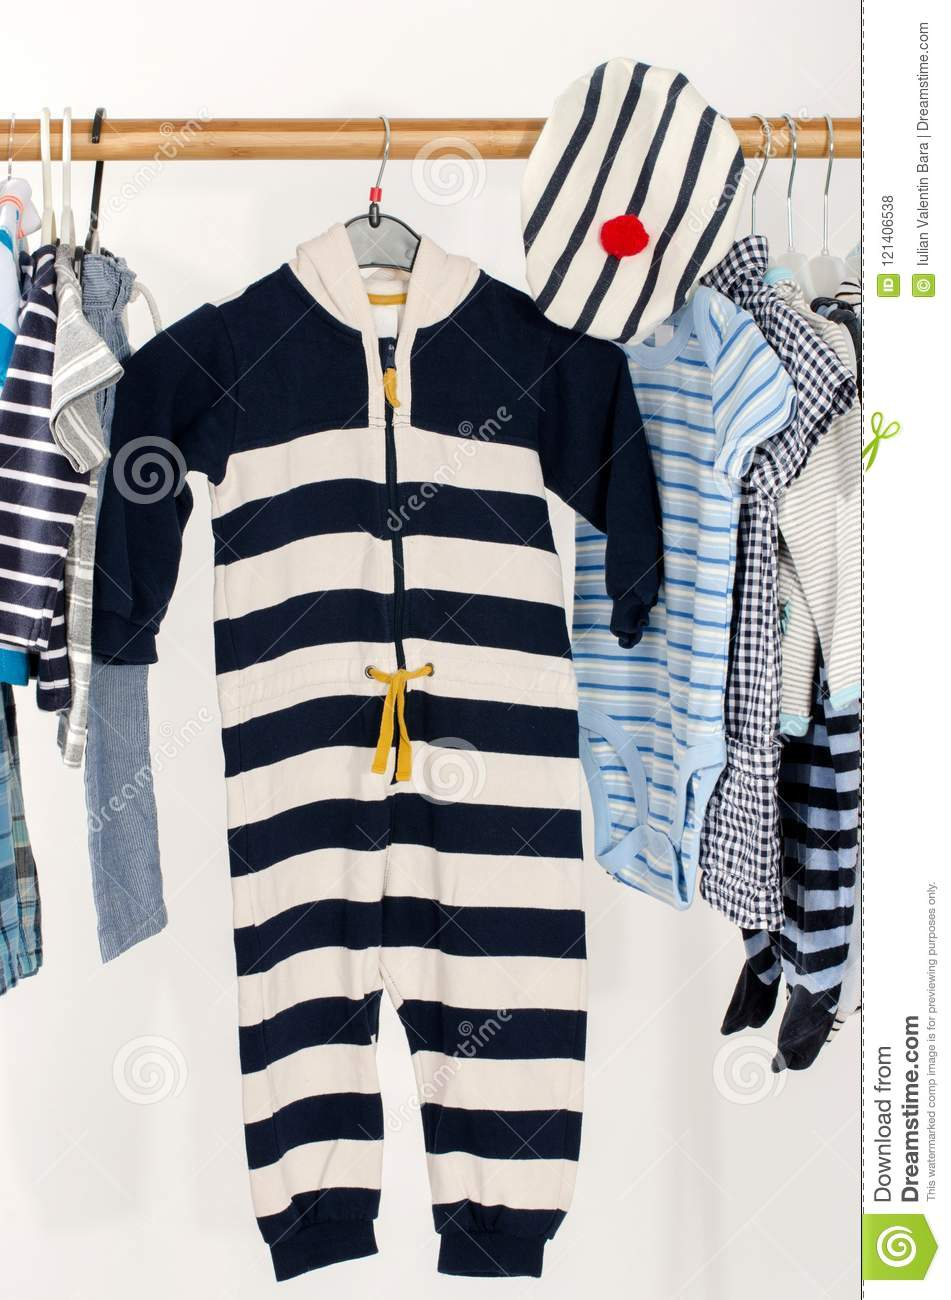 eebb57153794 Dressing Closet With Baby Striped Clothes Arranged On Hangers. Stock ...